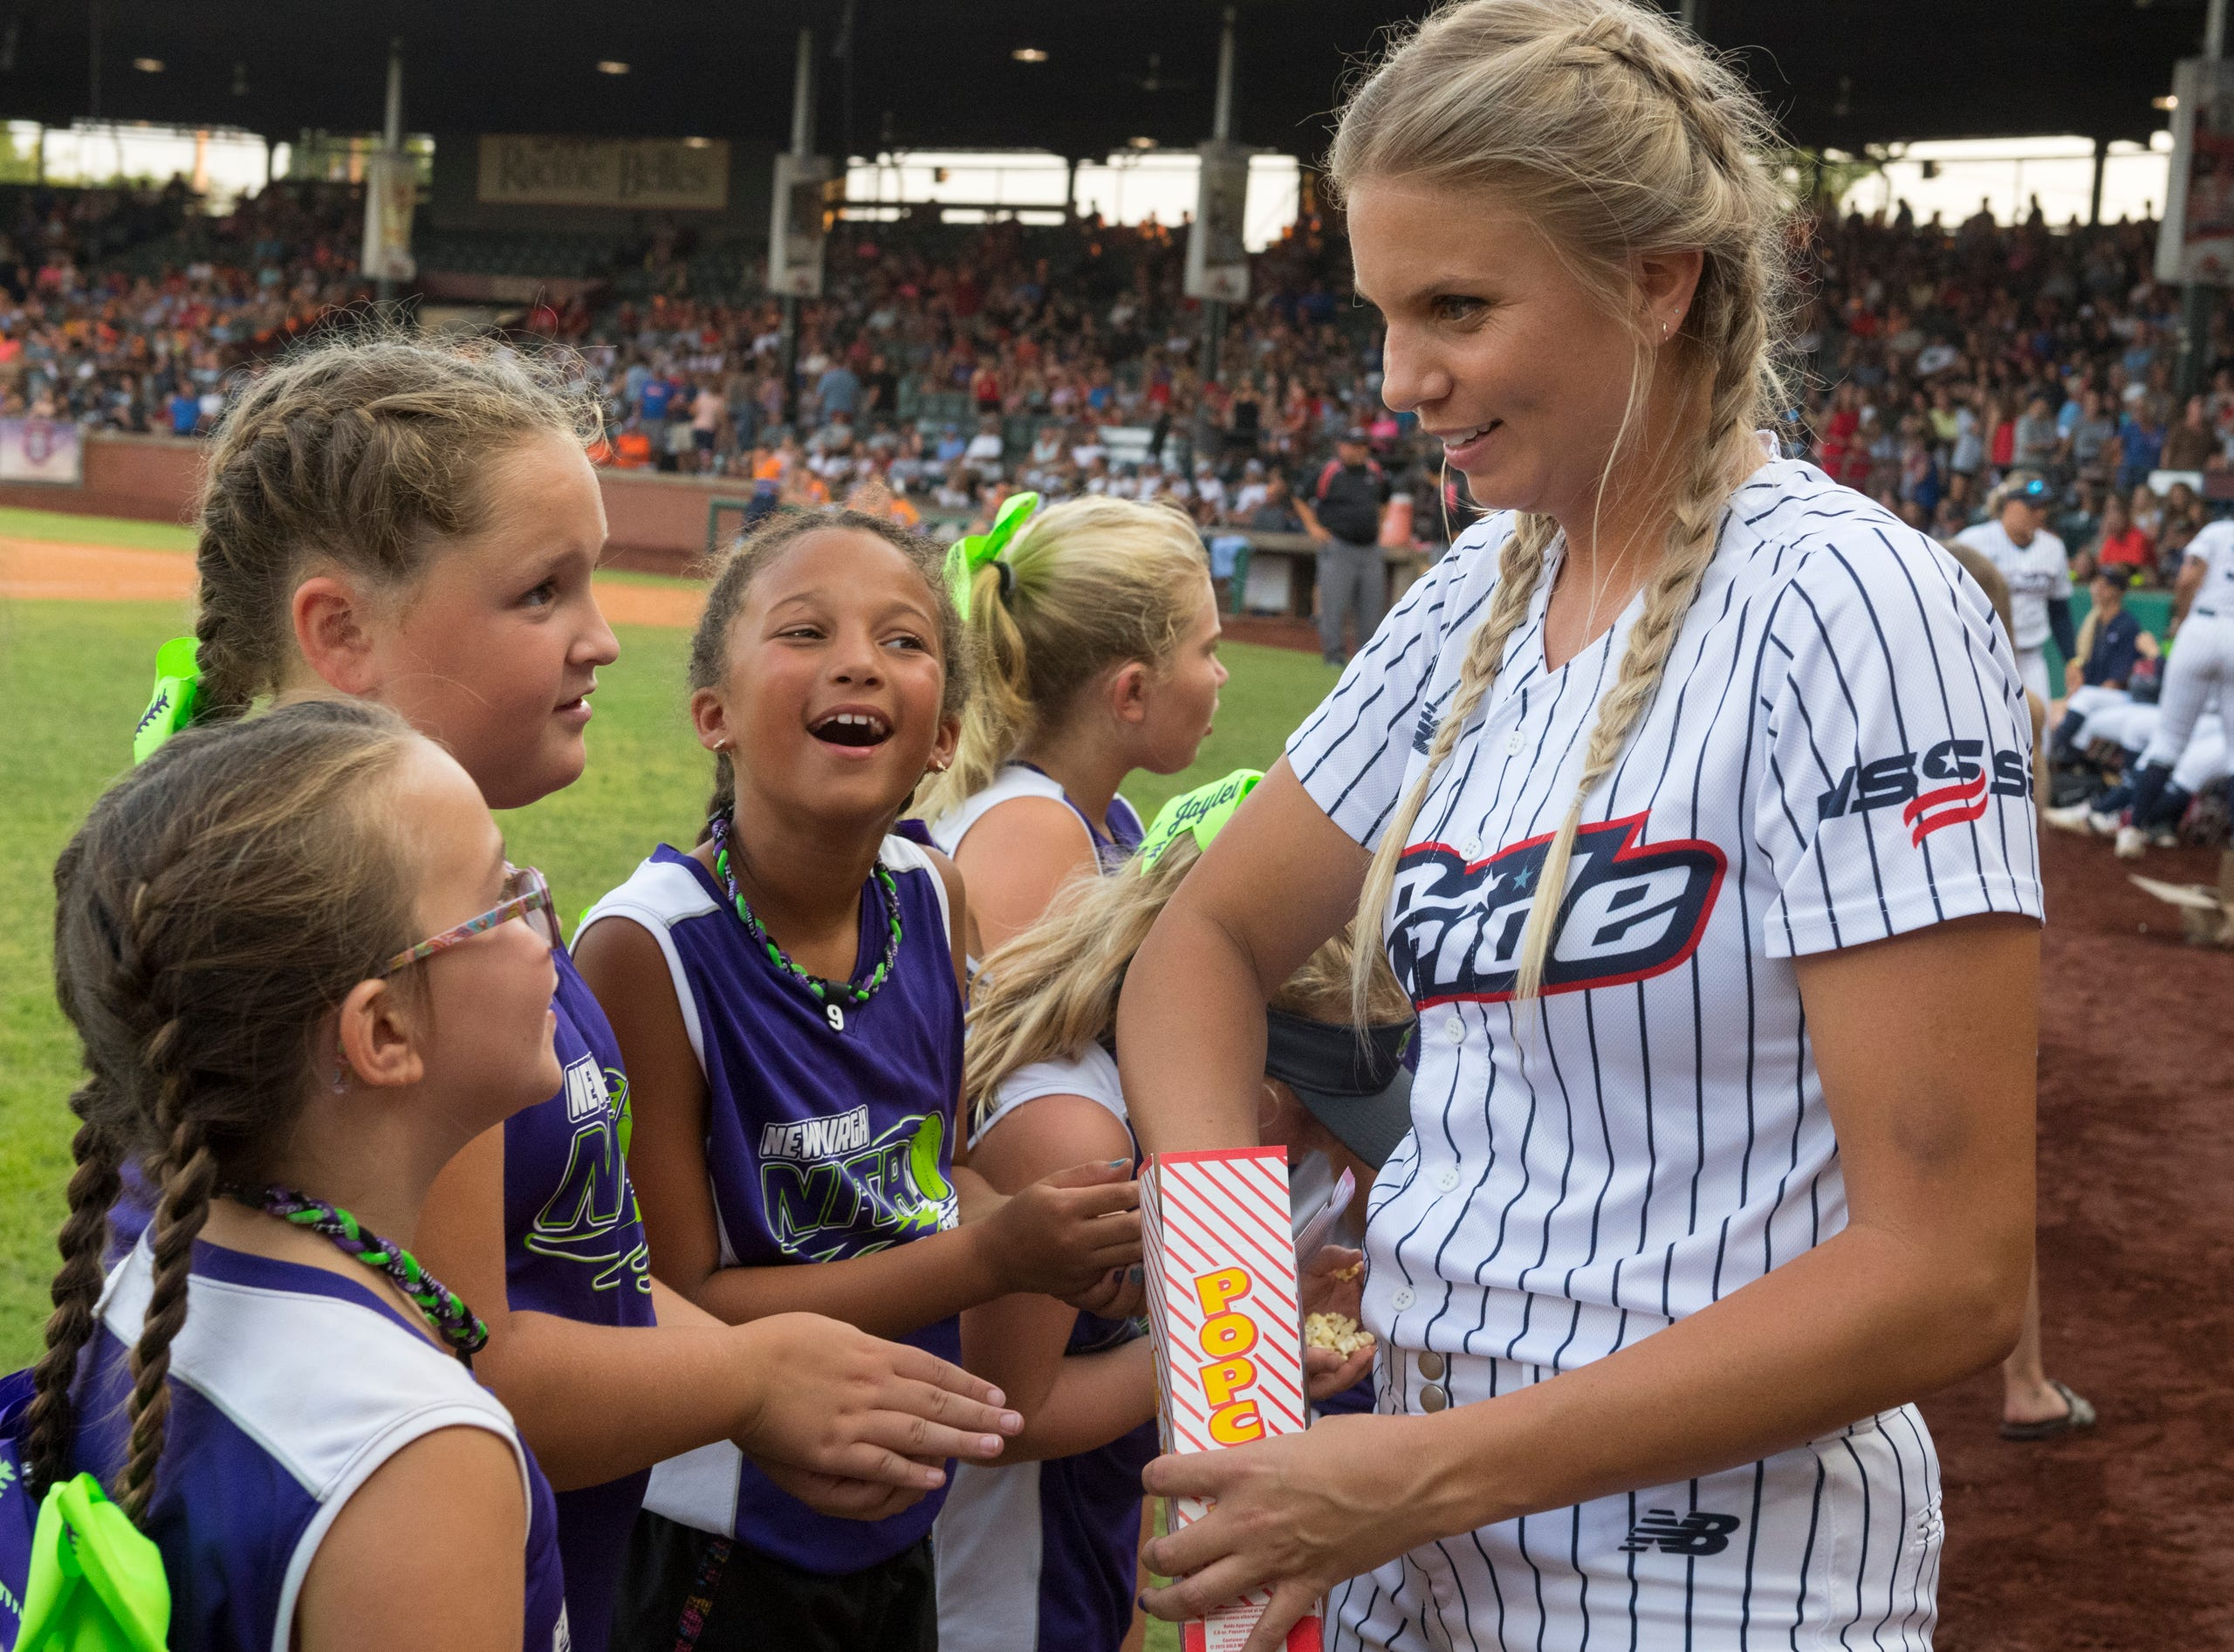 USSSA Pride's Jessica Burroughs (16) hands out popcorn to the Newburgh Nitro softball team ahead of the exhibition game between USSSA Pride and Team Florida at Bosse Field in Evansville, Ind., Wednesday evening, July 14, 2021.